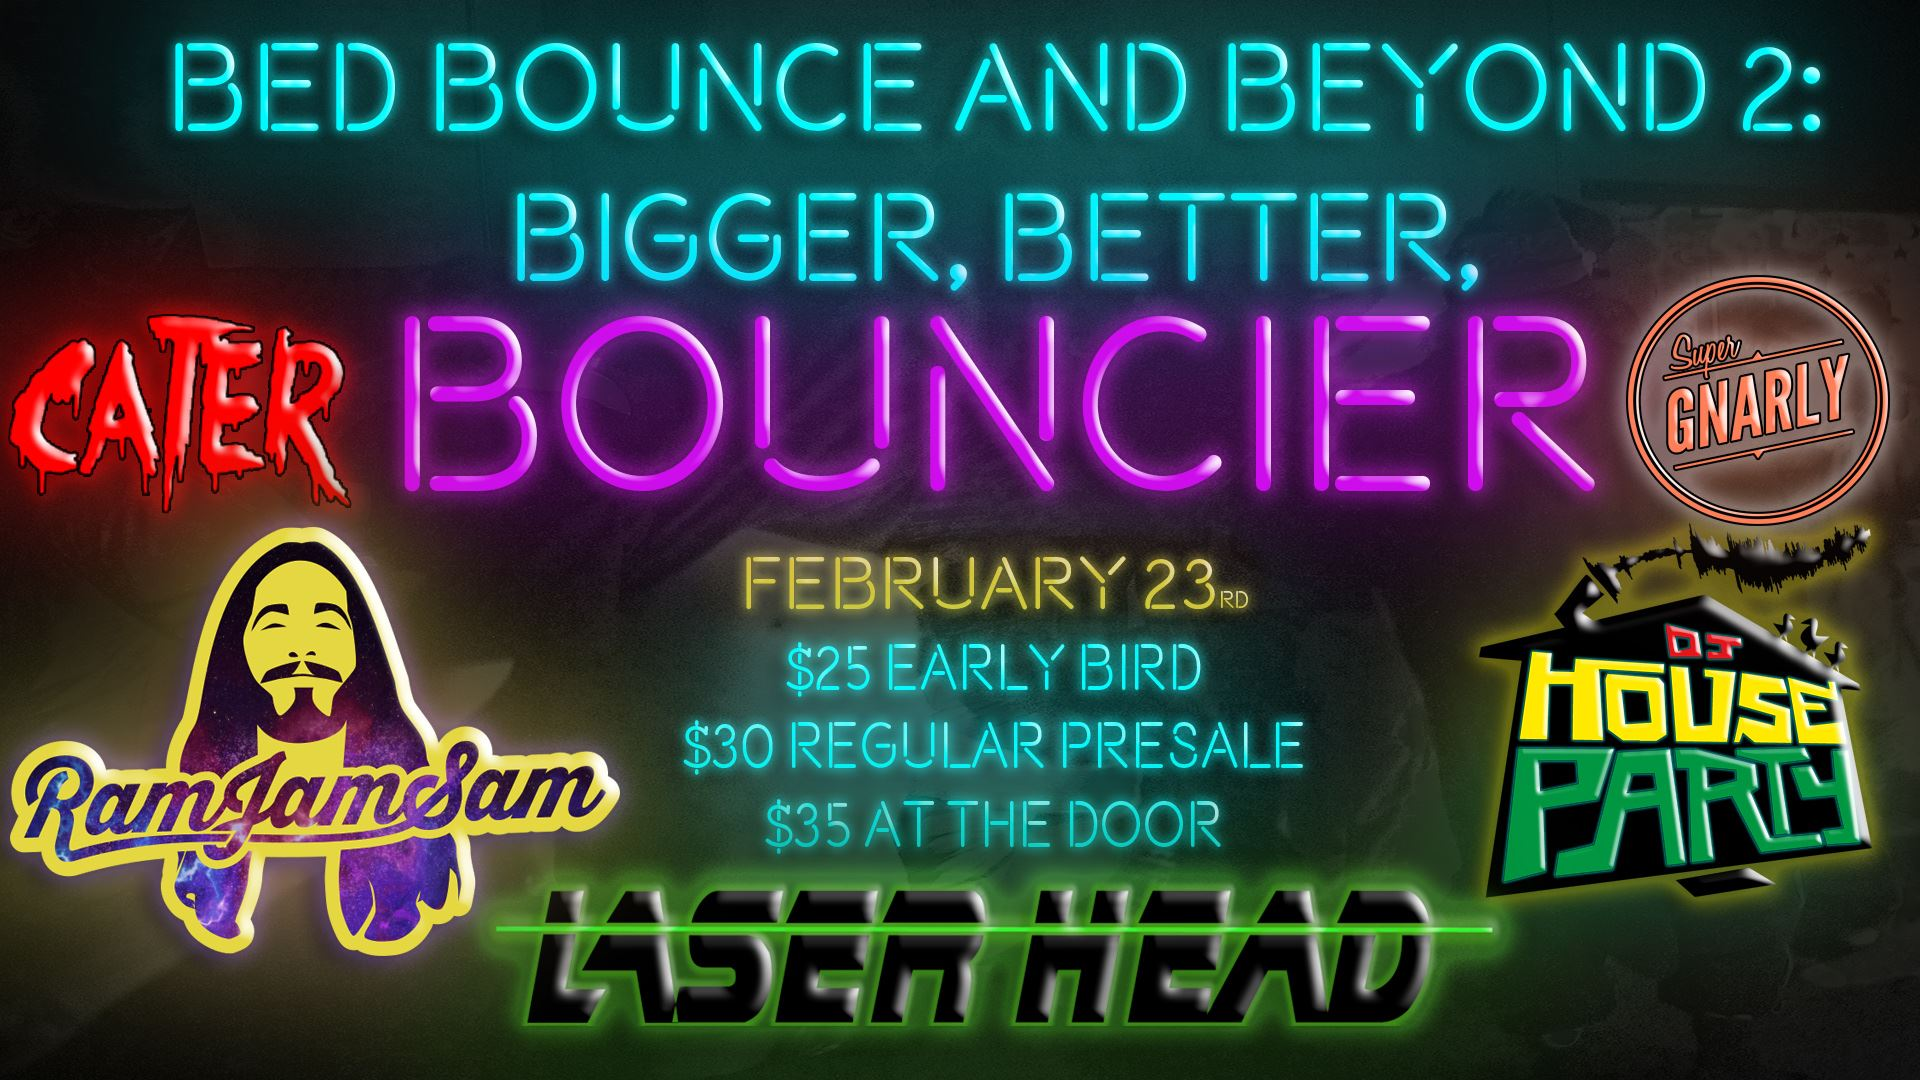 Bed Bounce and Beyond 2: Bigger, Better and Bouncier